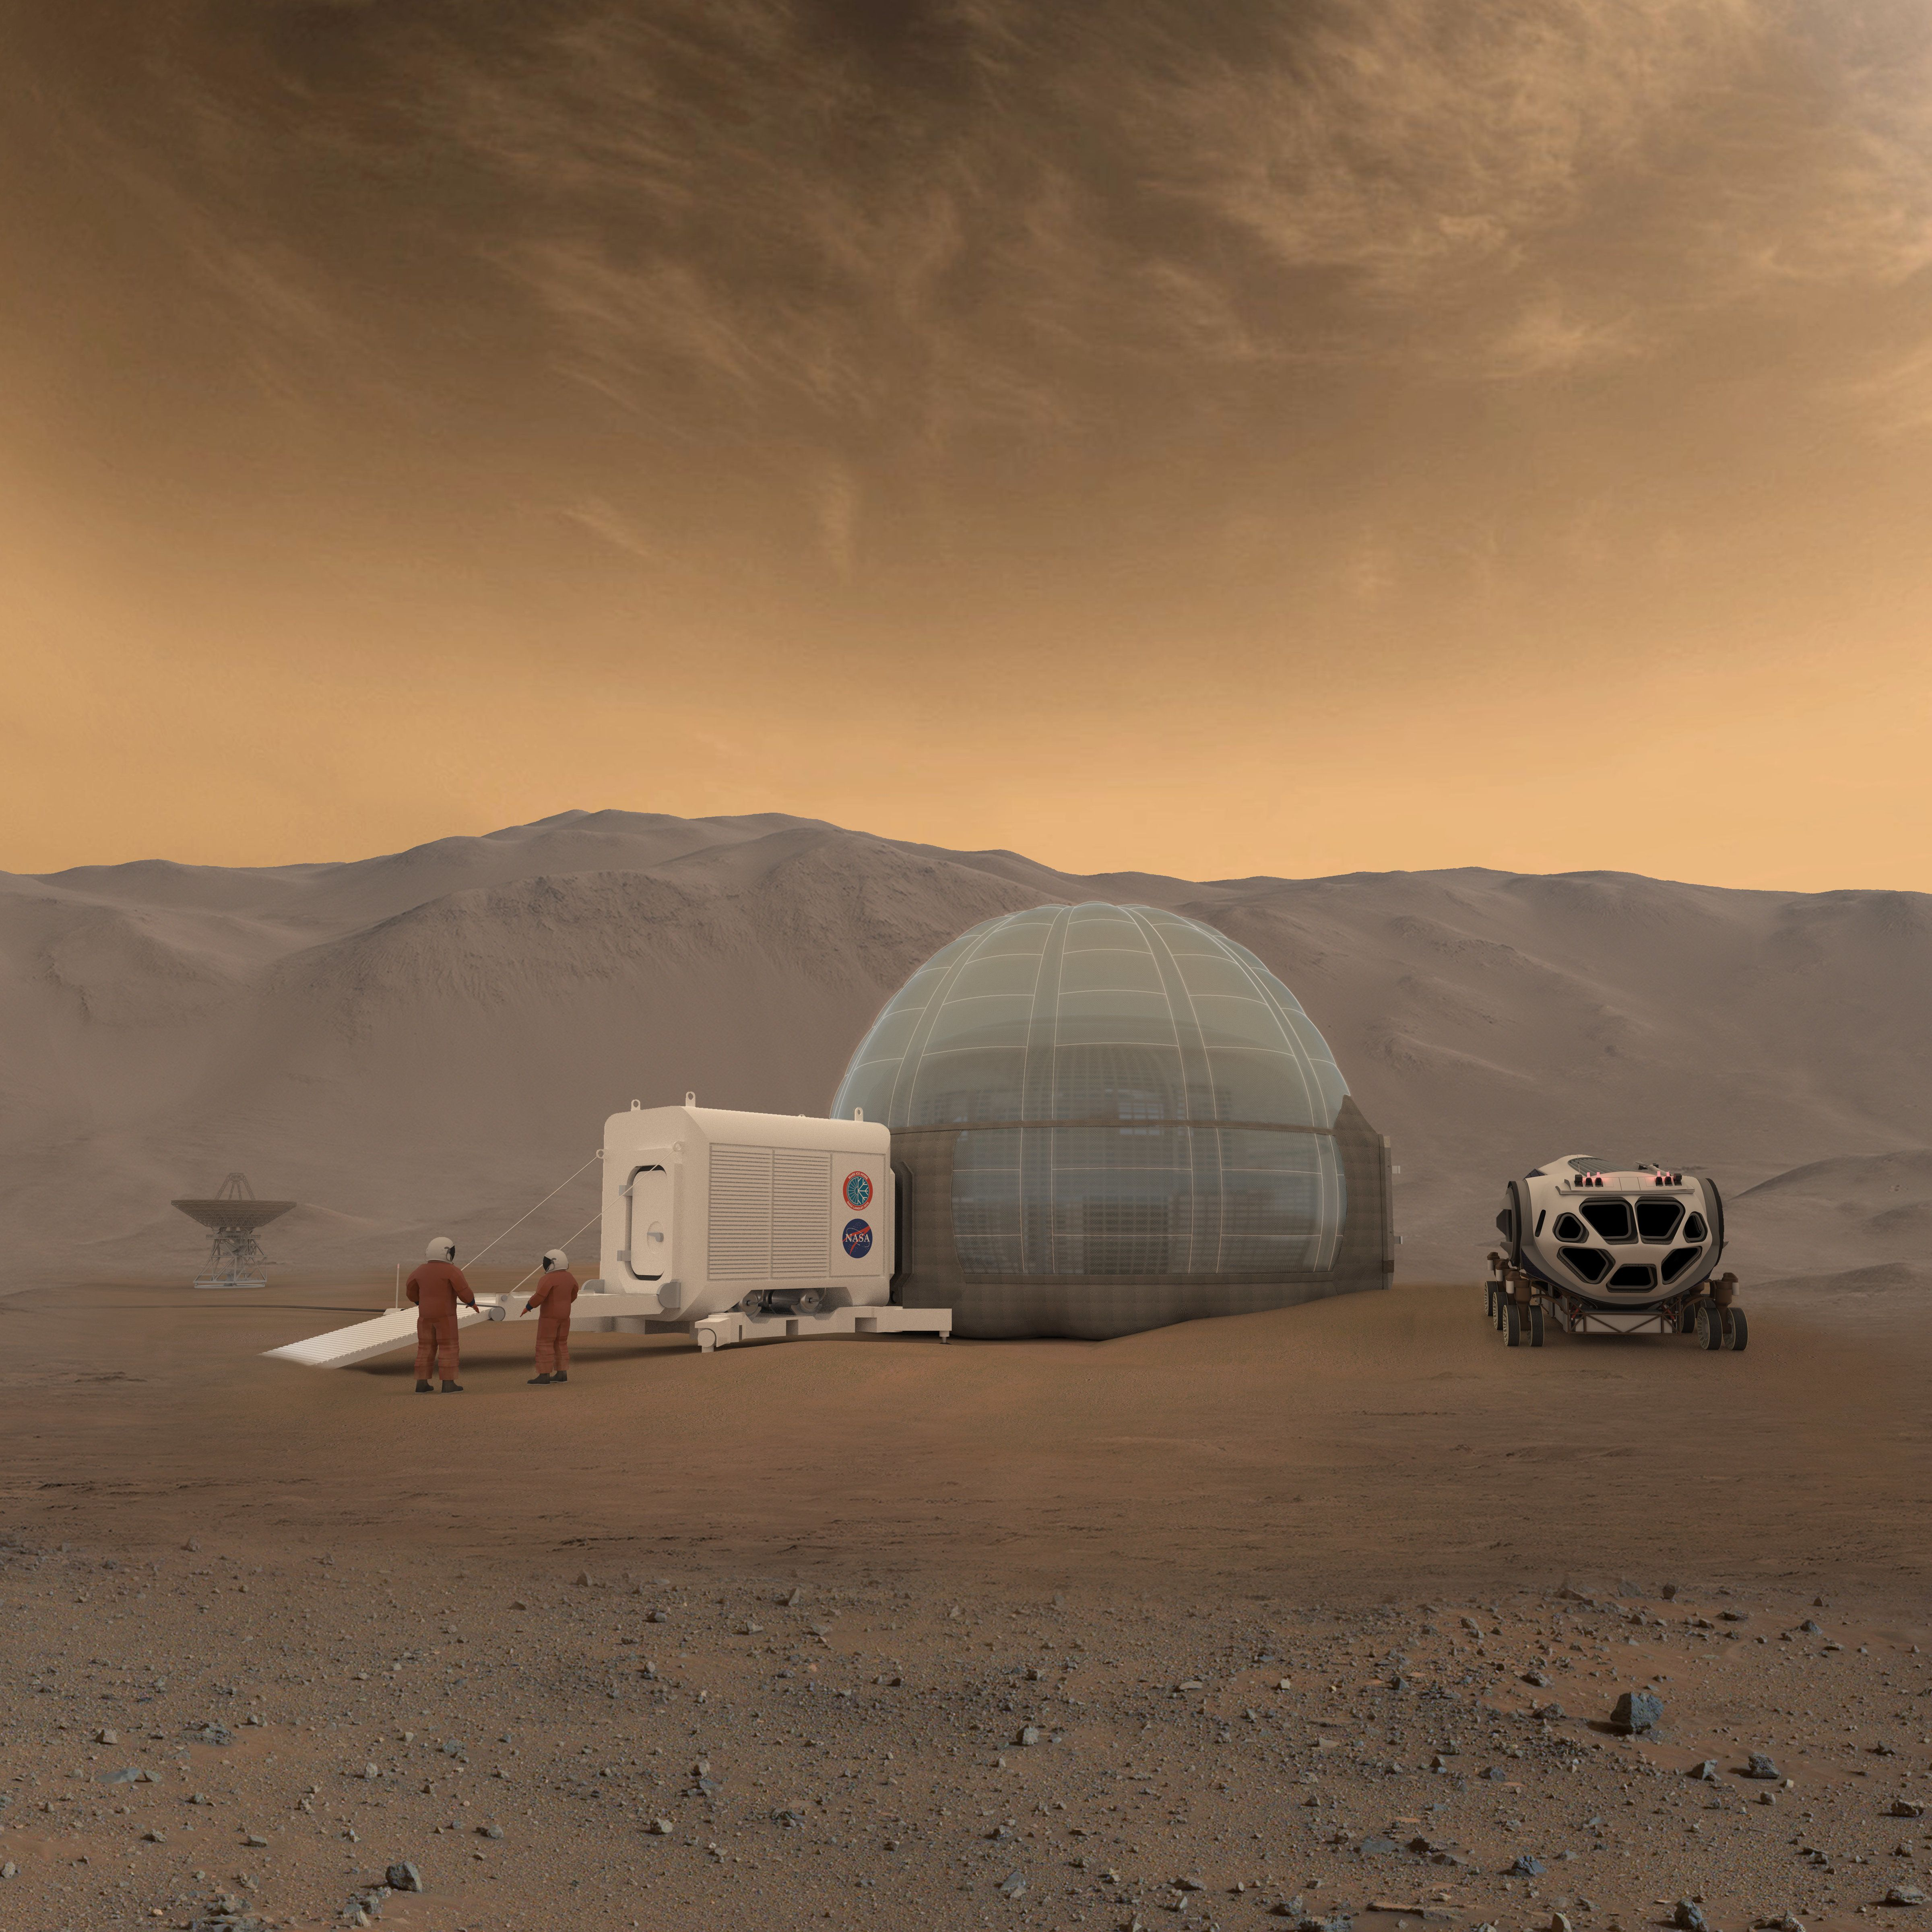 An artist's rendering of the Mars Ice Home